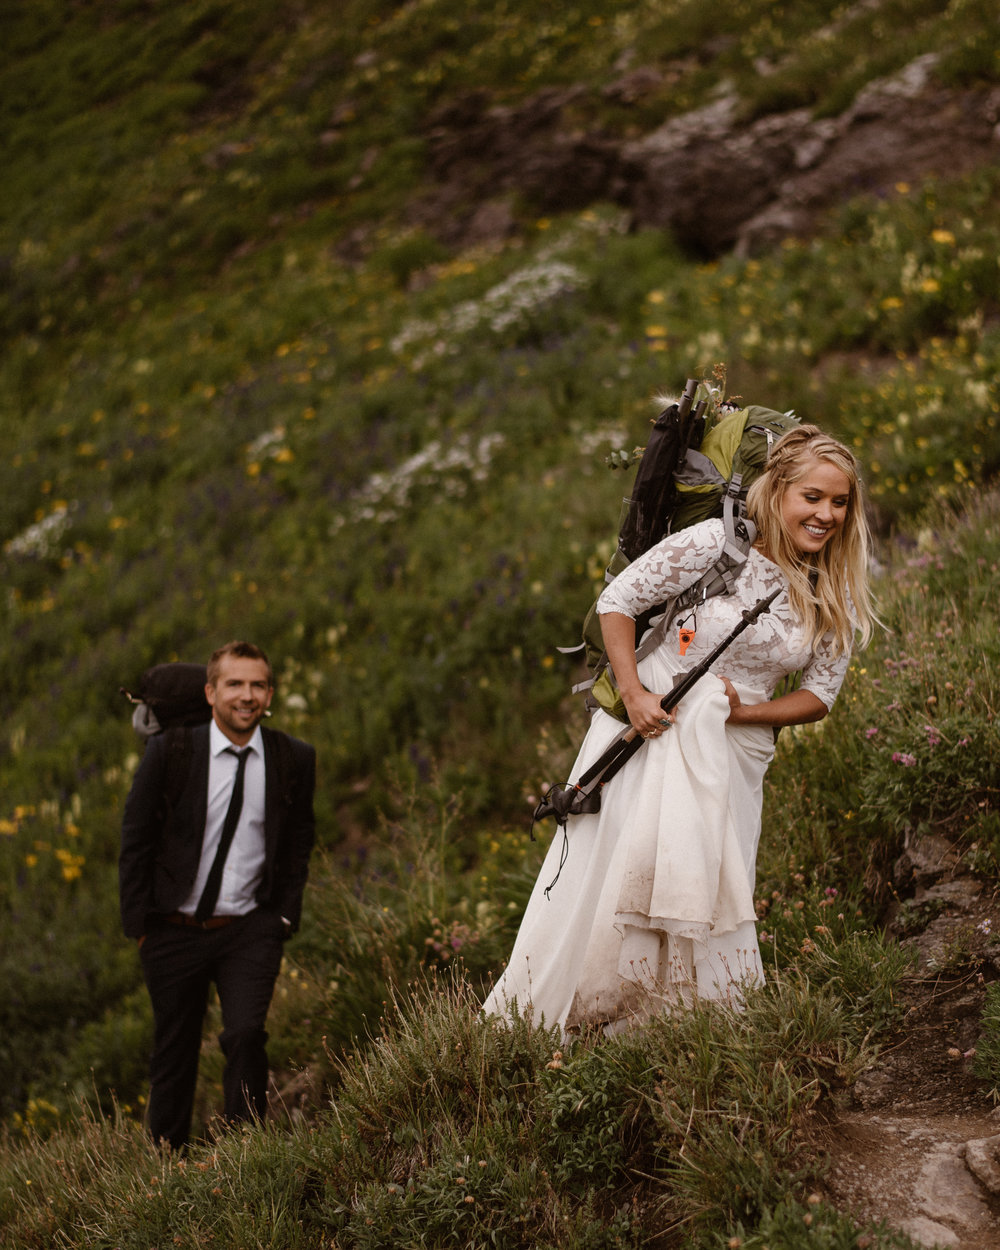 All-DayHiking Elopements - Want get up early, hit the trail before dark, and have an incredibly beautiful place to all yourself to say your vows at sunrise? Hiking elopements are one of the most incredible ways to elope and we'd be stoked to carry our 40lb gear miles up a 14,000 ft mountain, and guide you up an incredible trail to get married! Yeah we're serious!